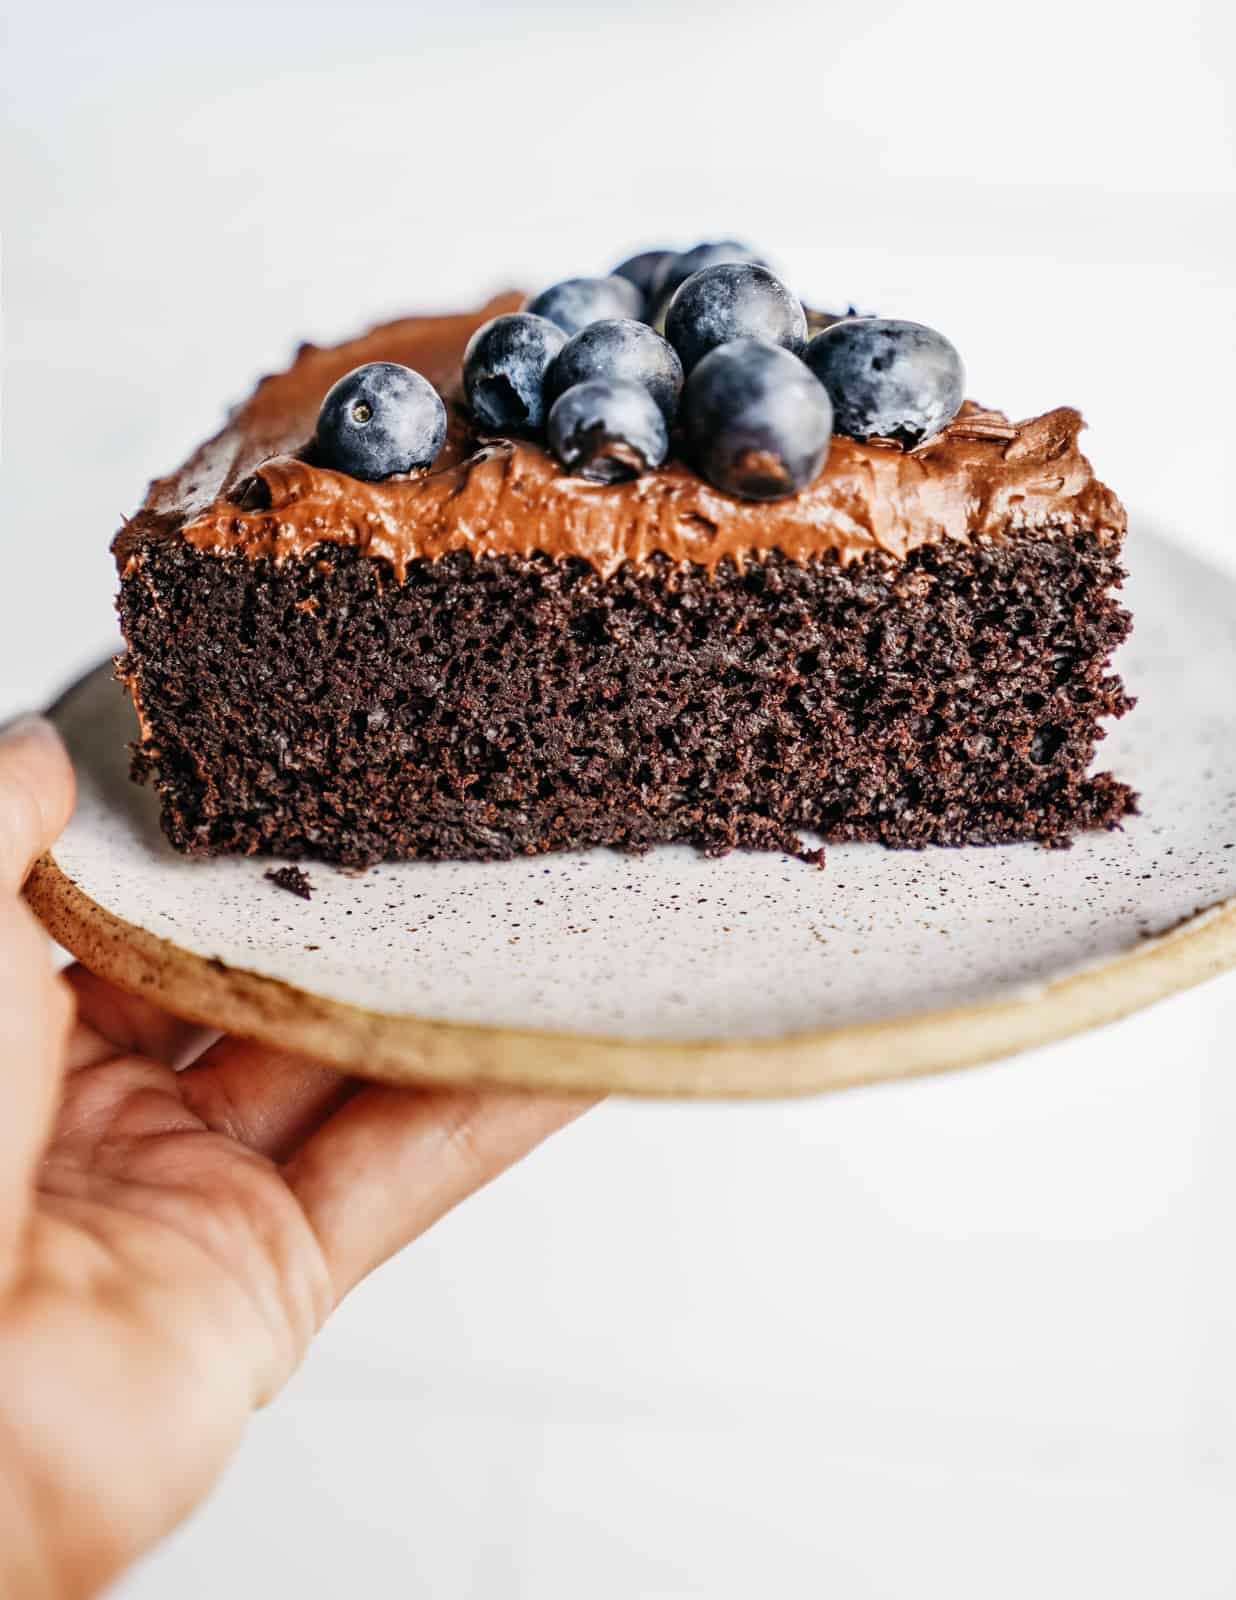 Close-up of a slice of moist Easy Vegan Chocolate Cake garnished with cashew frosting and blueberries.